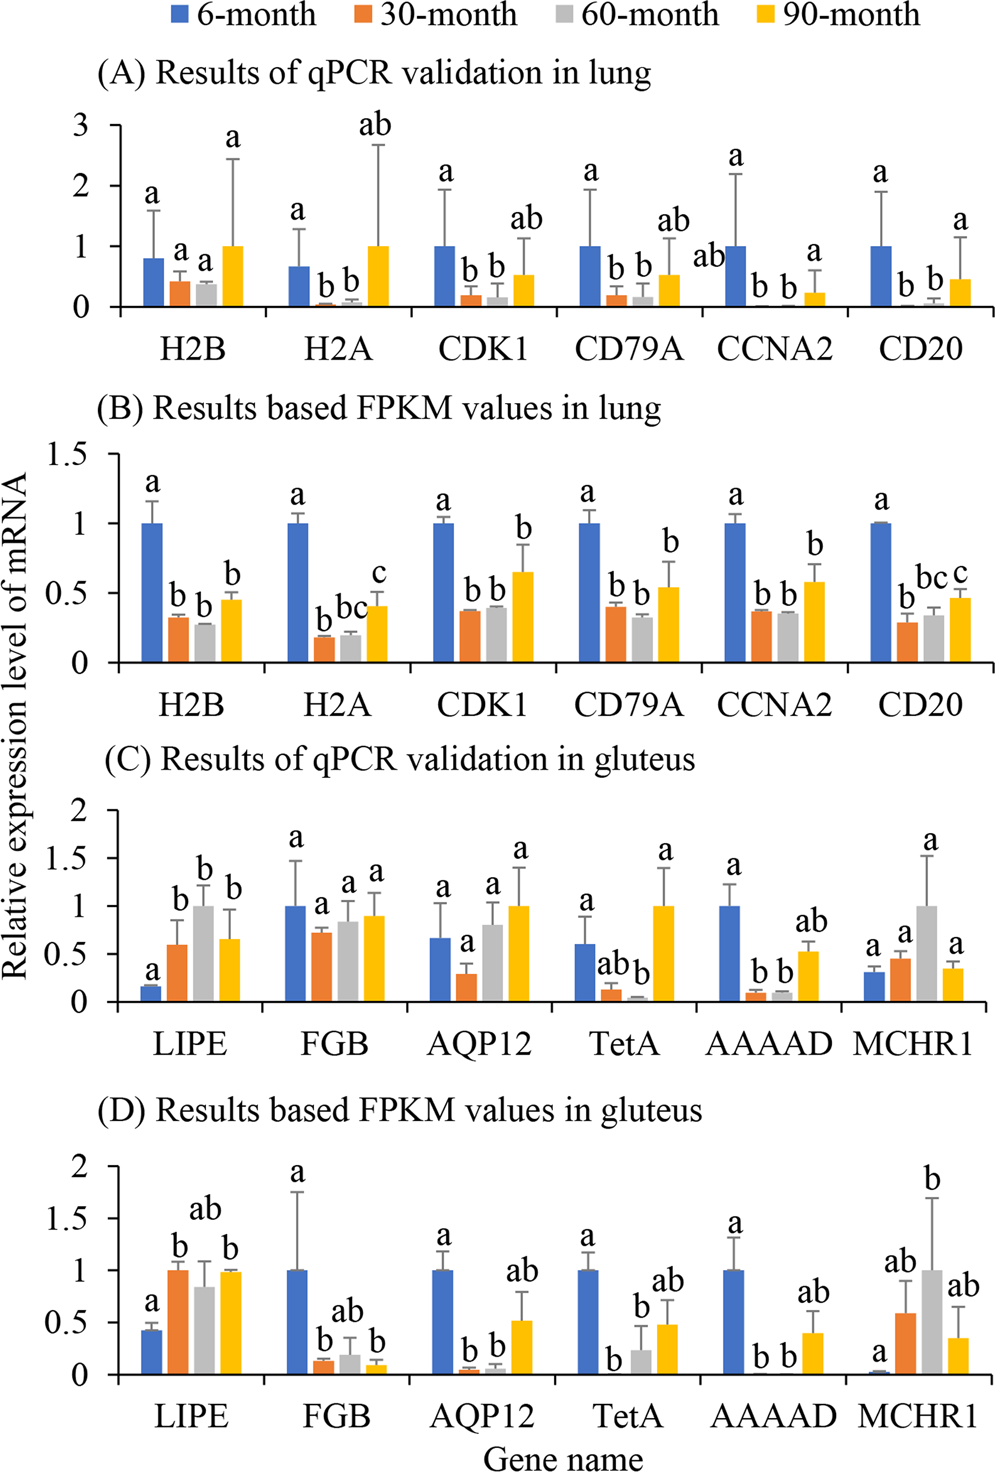 Comparisons of lung and gluteus transcriptome profiles